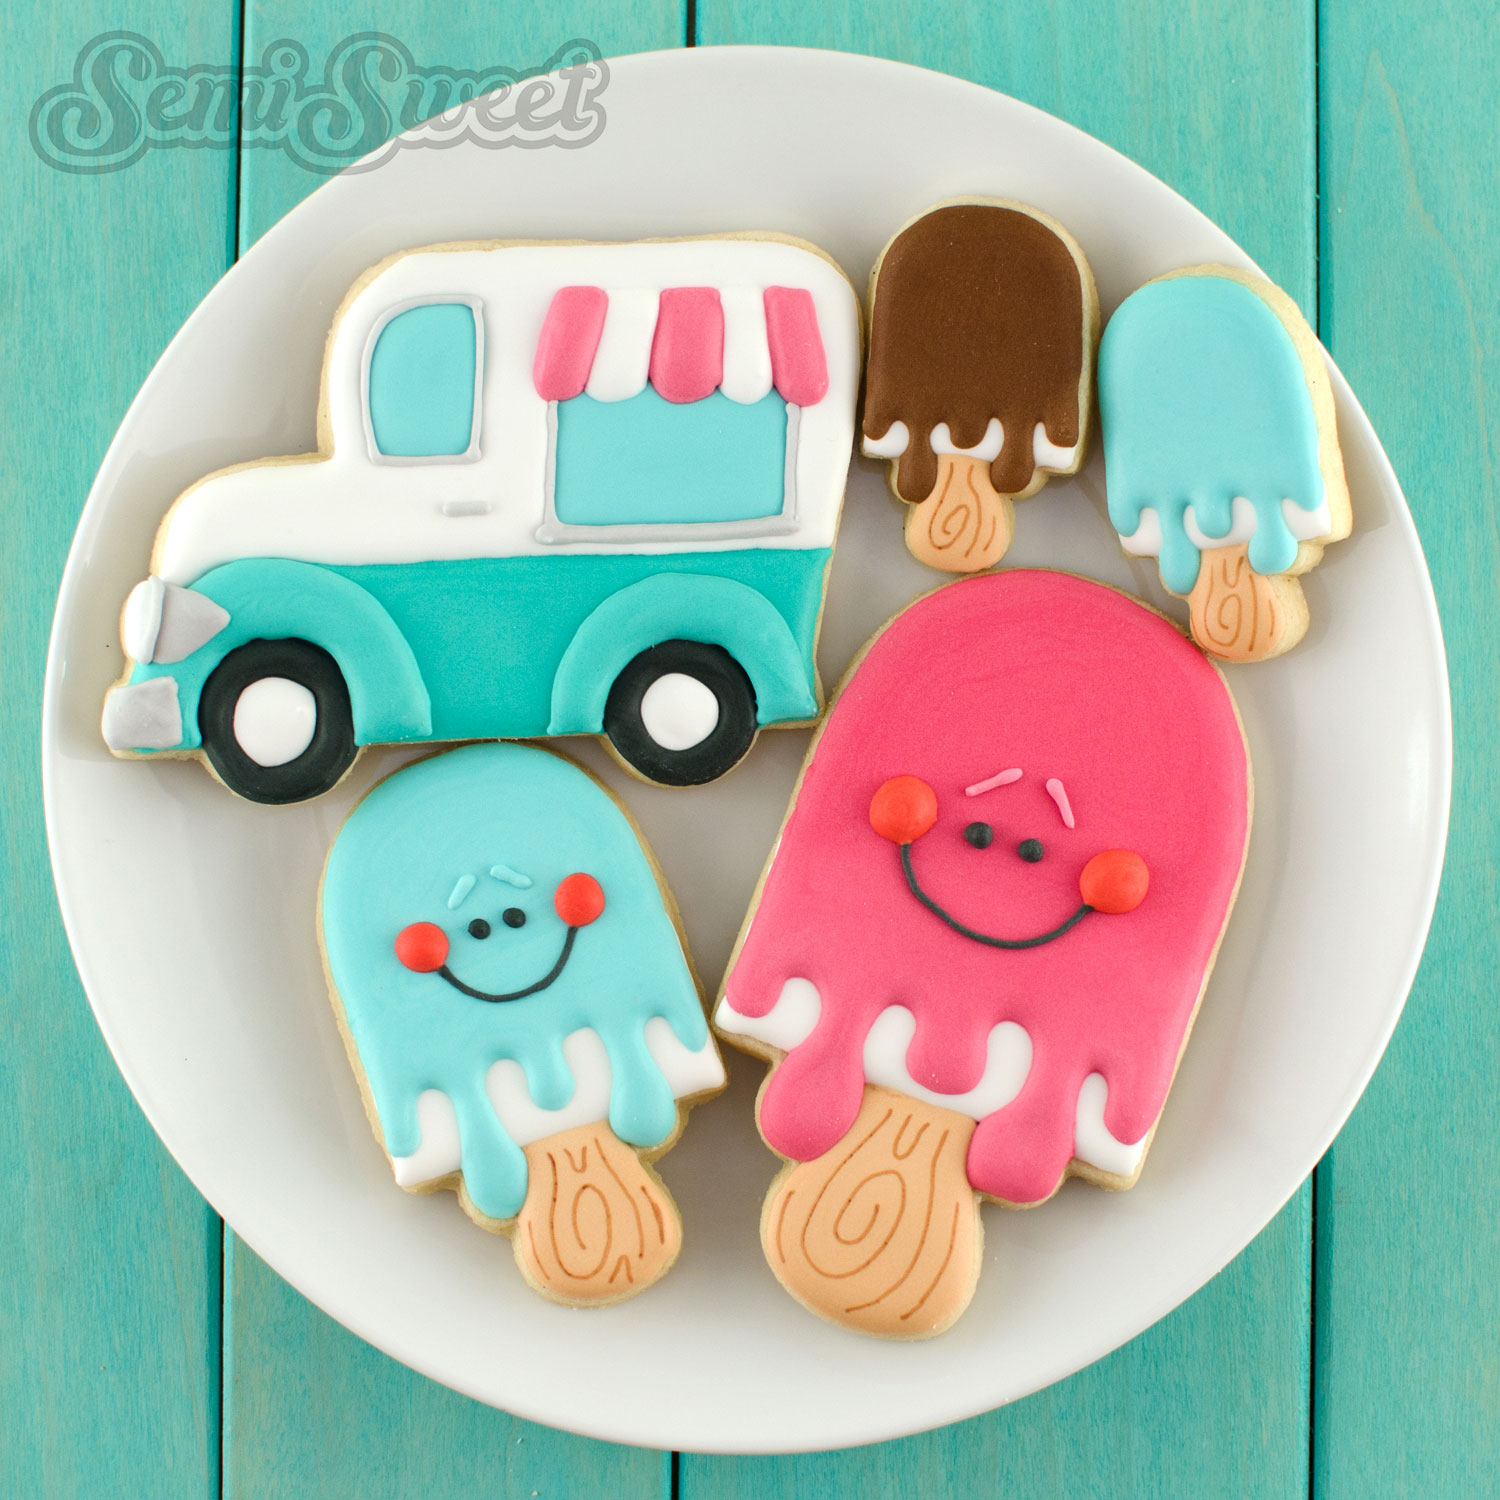 decorated popsicle cookies